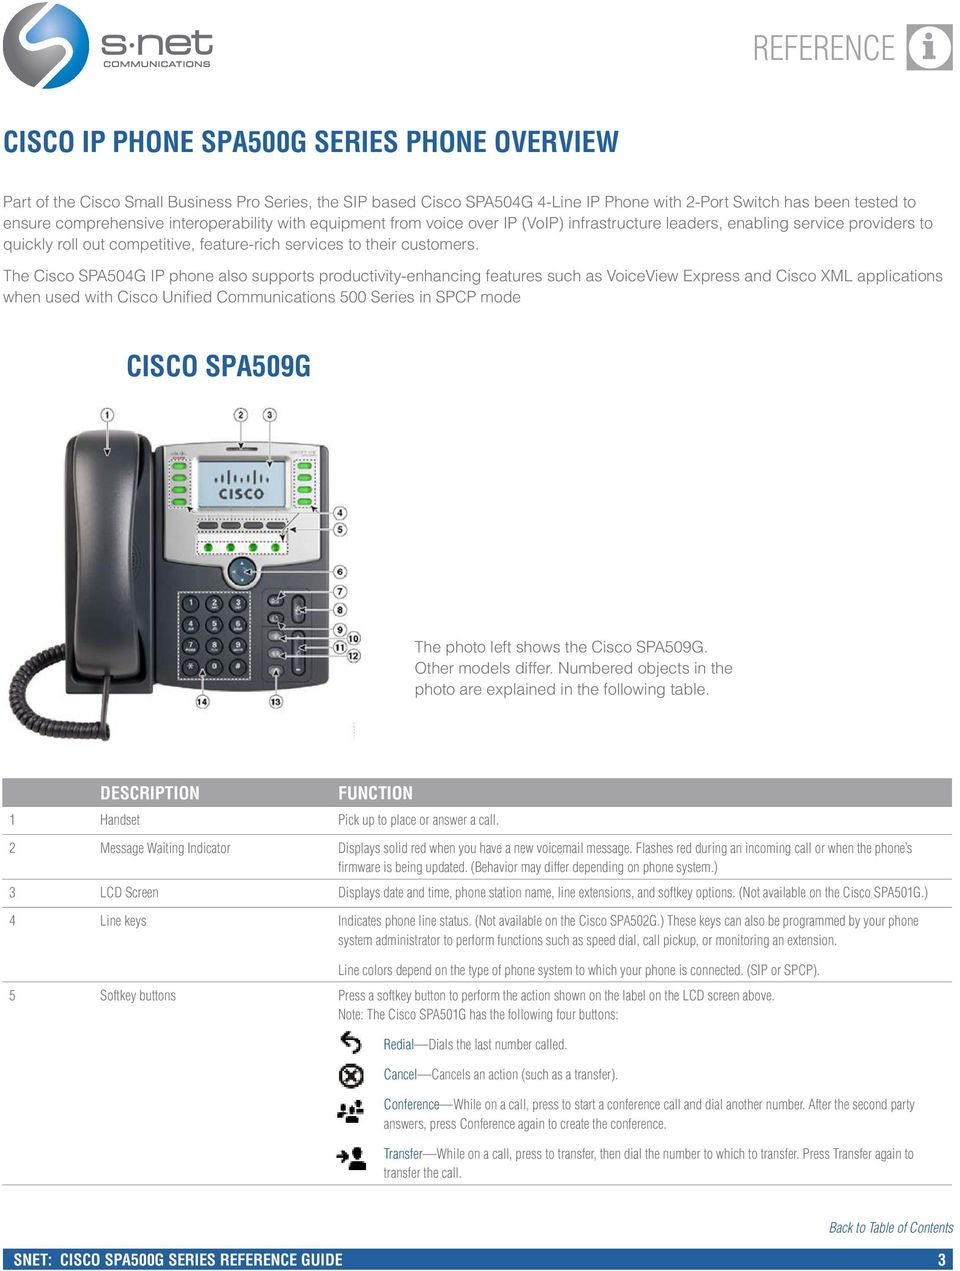 The Csco SPA504G IP phone also supports productvty-enhancng features such as VoceVew Express and Csco XML applcatons when used wth Csco Unfed Communcatons 500 Seres n SPCP mode CISCO SPA509G The